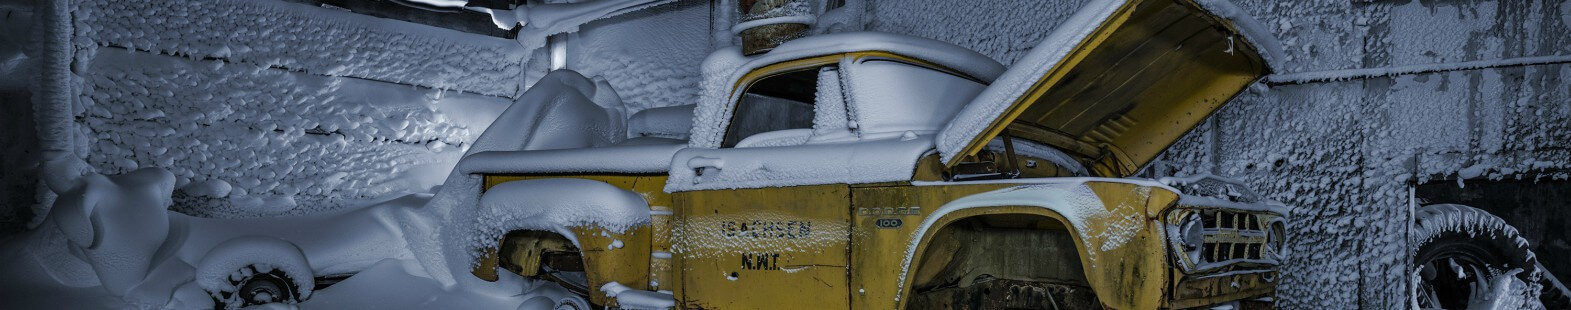 Image from Isachsen by aAron munson shows an old yellow pick up truck covered in snow, in a frozen garage